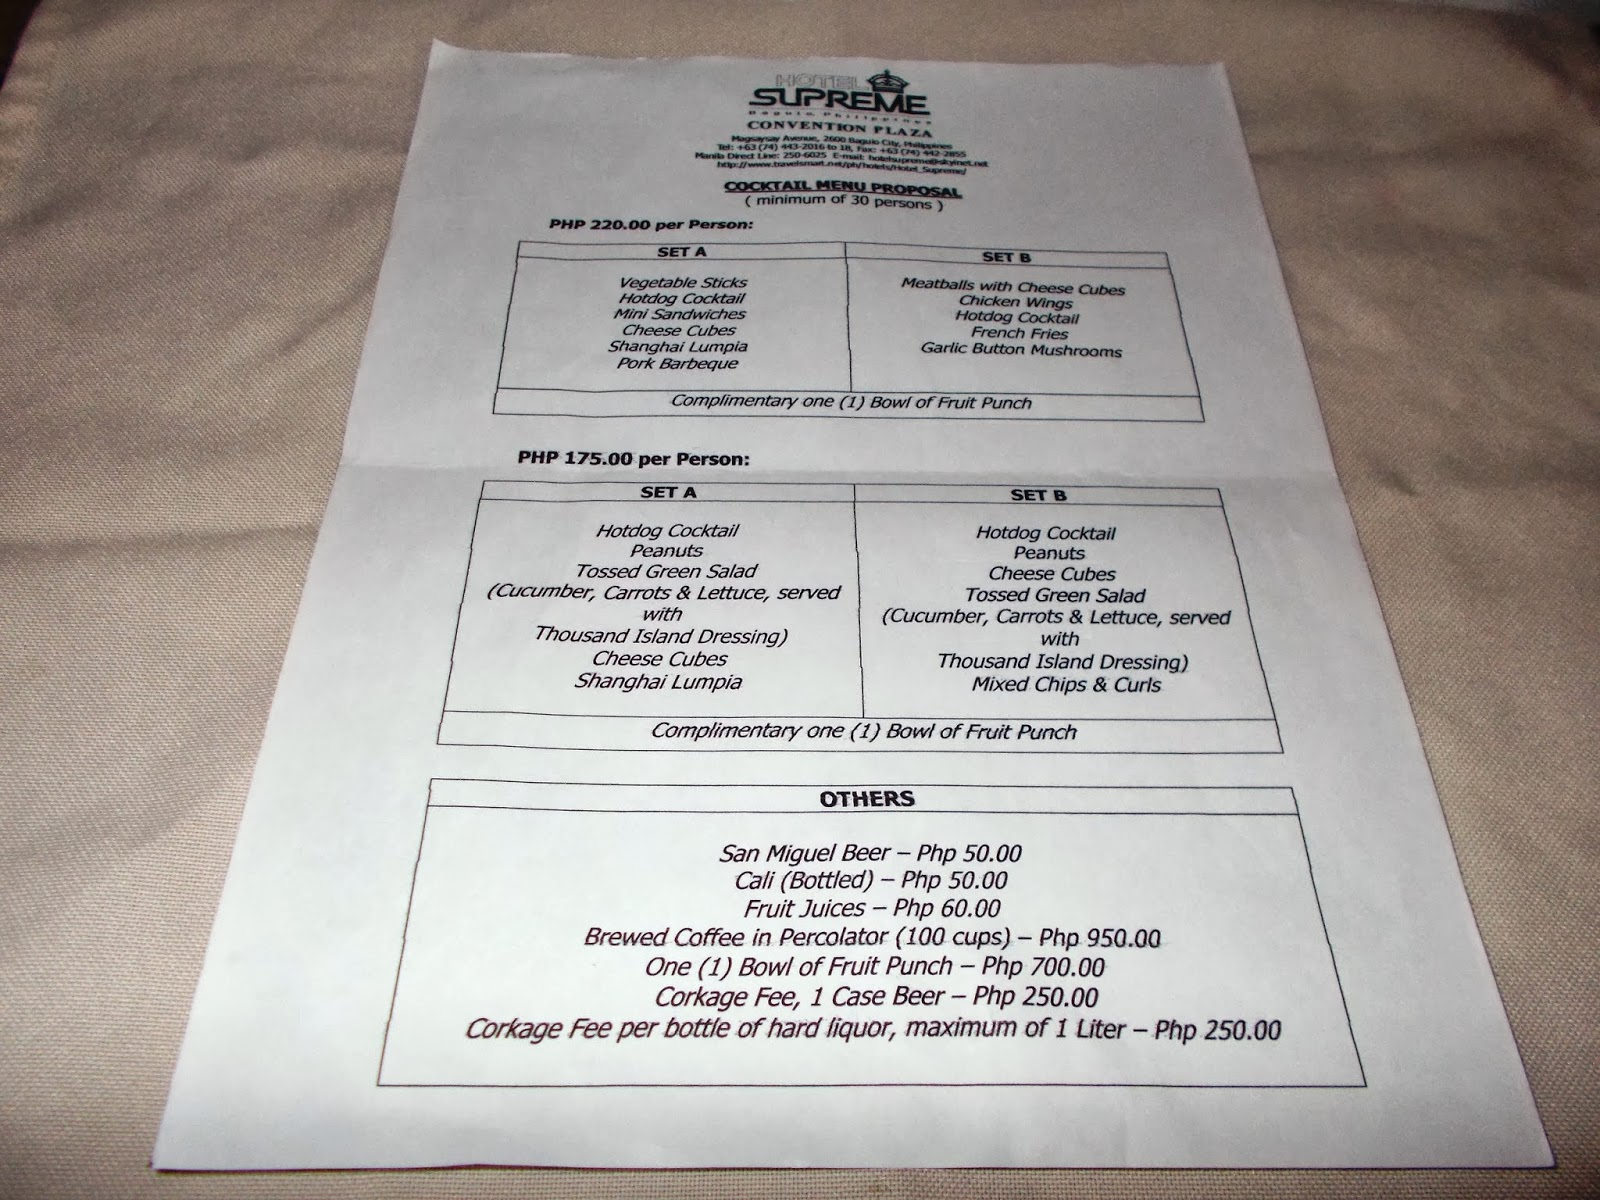 Supreme Hotel Menu List And Rates Wedding Packages